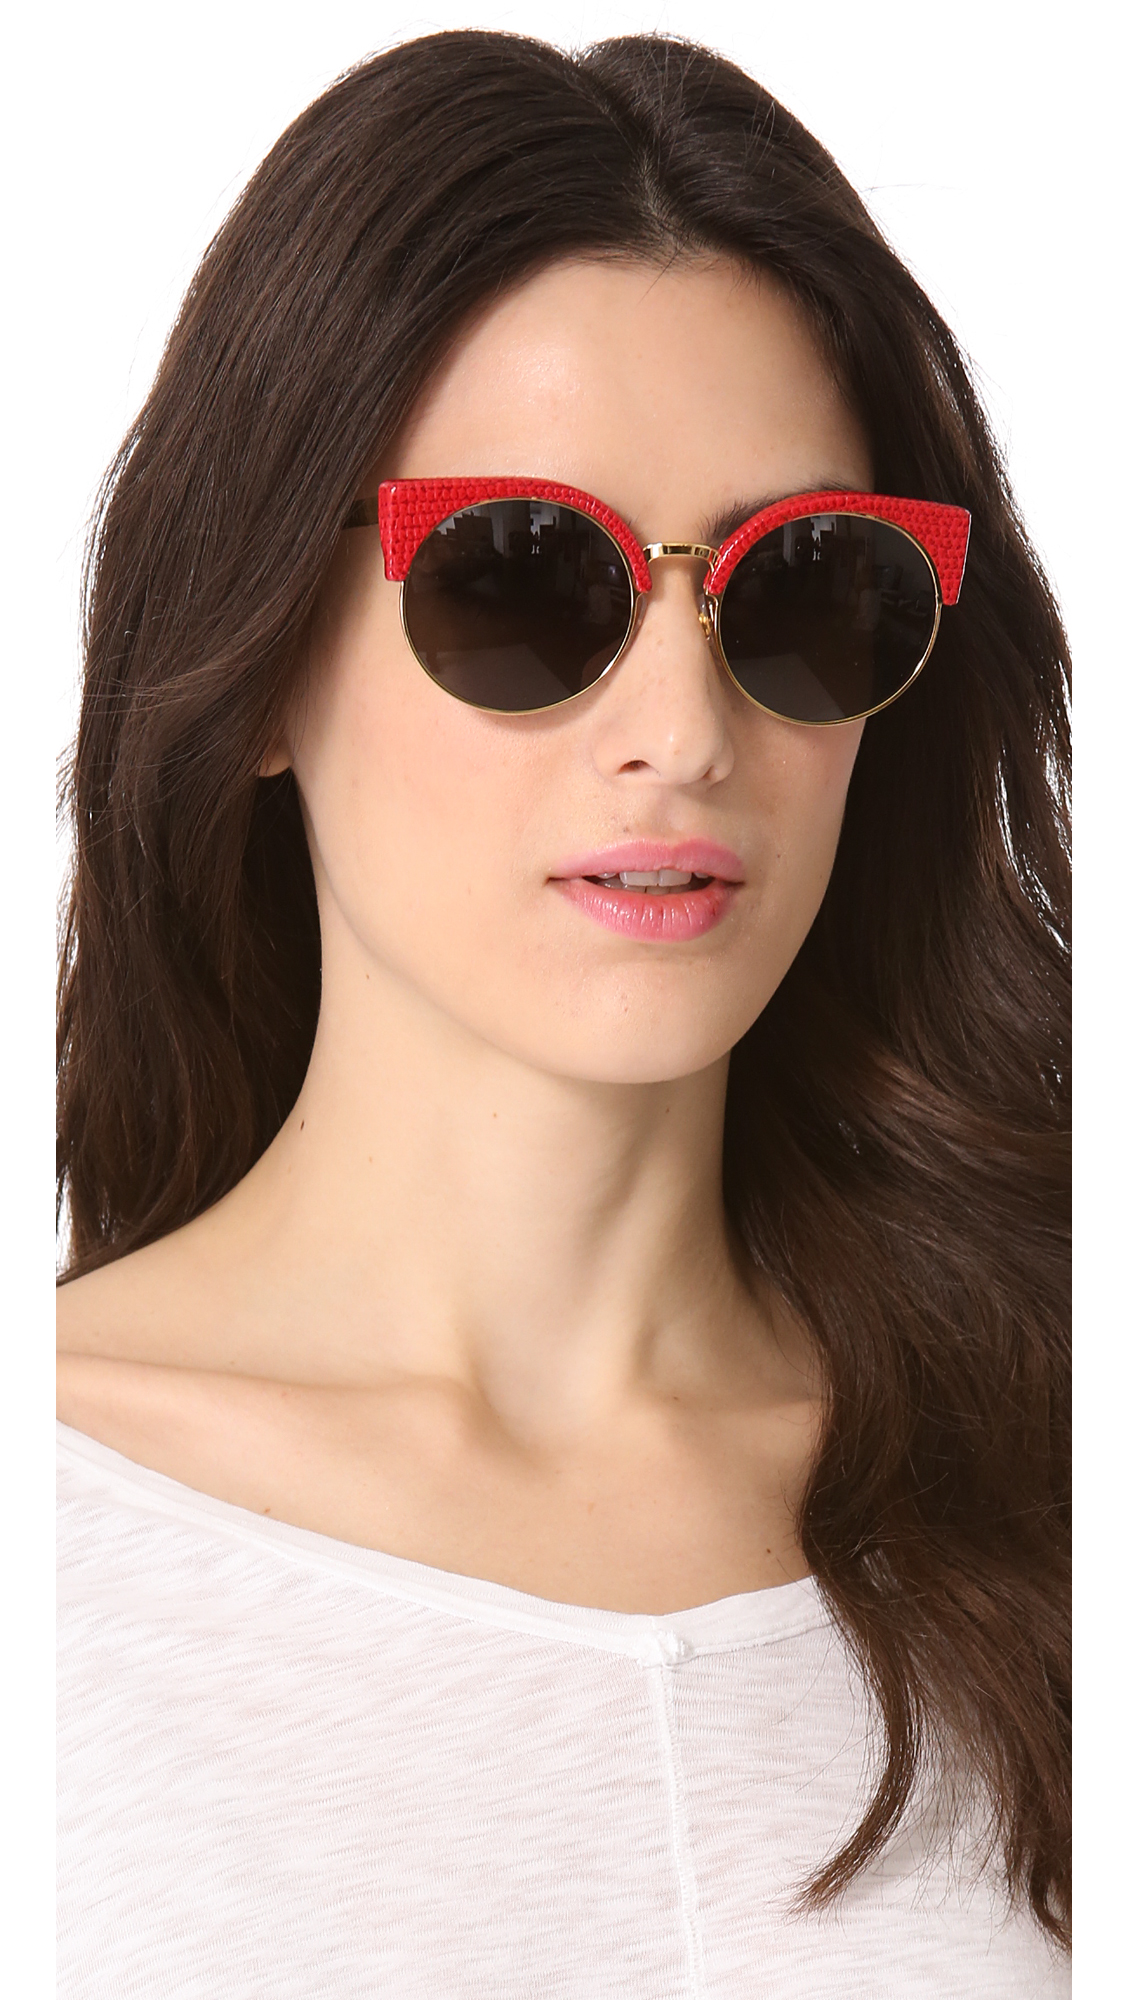 Retrosuperfuture Retrosuperfuture Sunglasses Retrosuperfuture Retrosuperfuture 'lucia' Sunglasses Sunglasses 'lucia' 'lucia' vxXqn